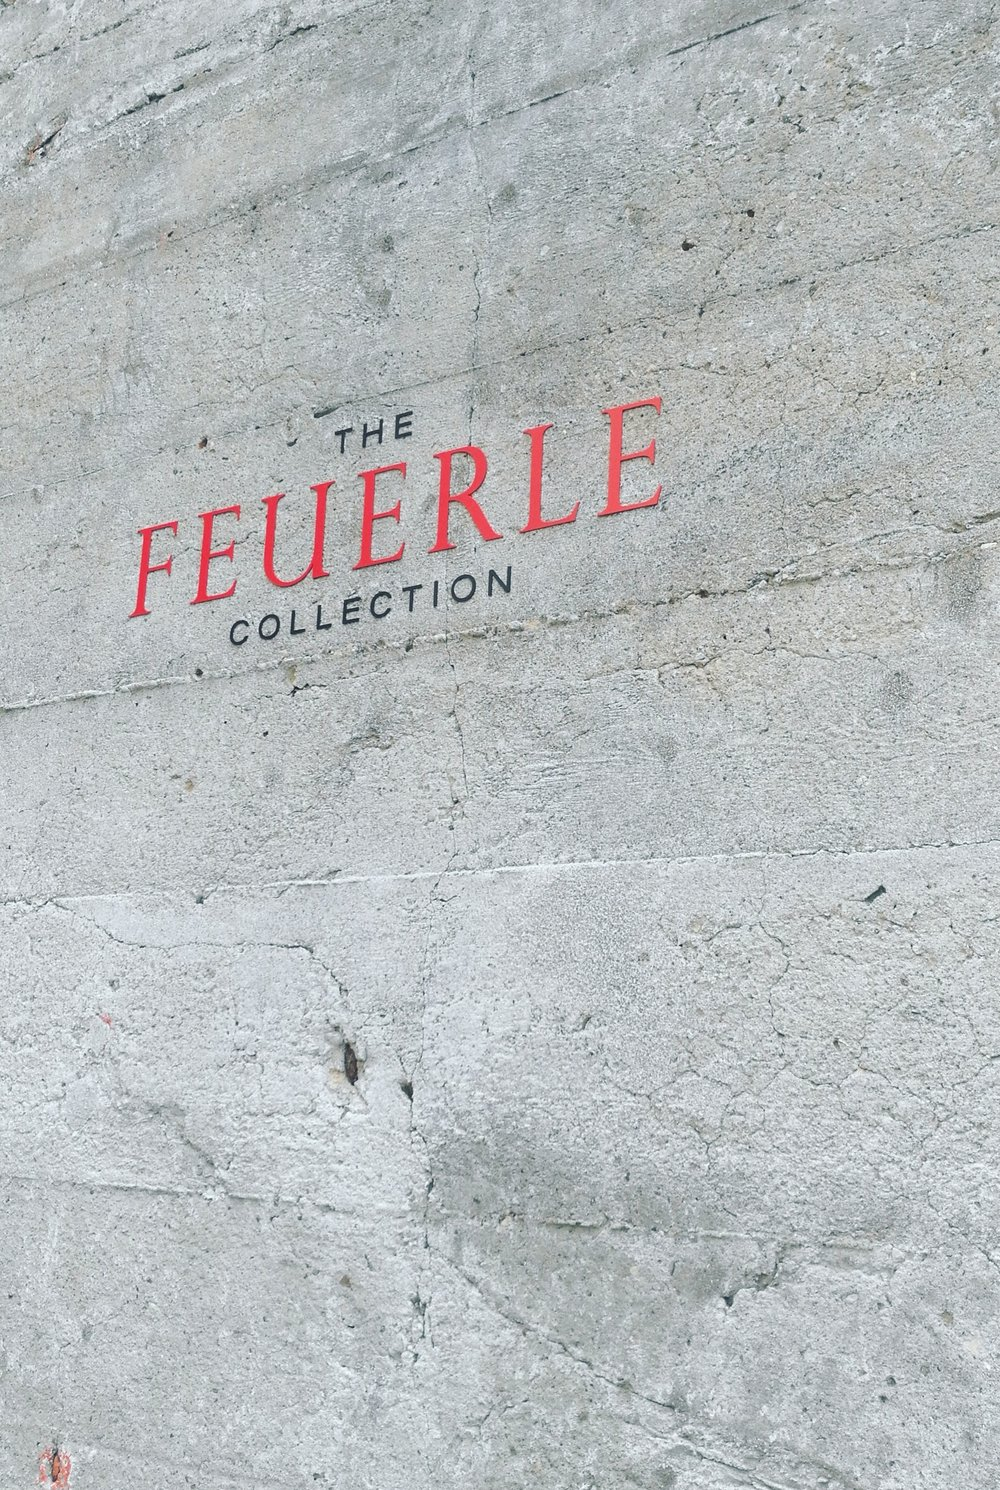 The Feuerle Collection